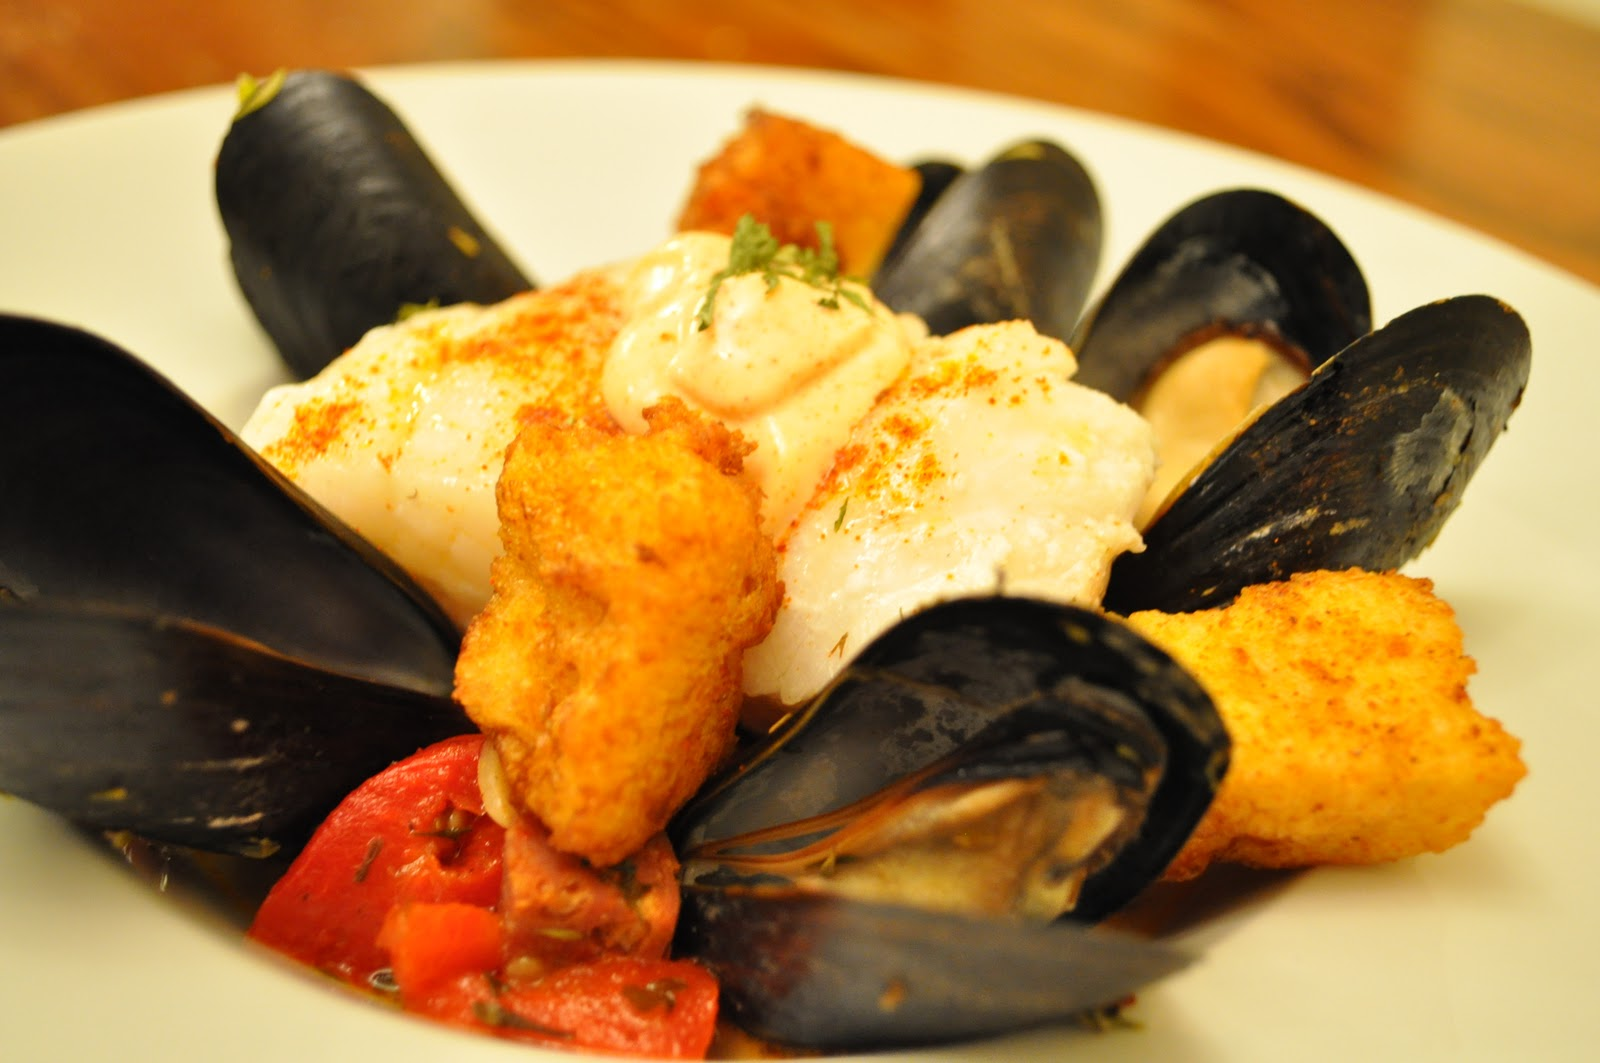 ... with Friends: Cod with Mussels, Chorizo, Croutons and Saffron Mayo